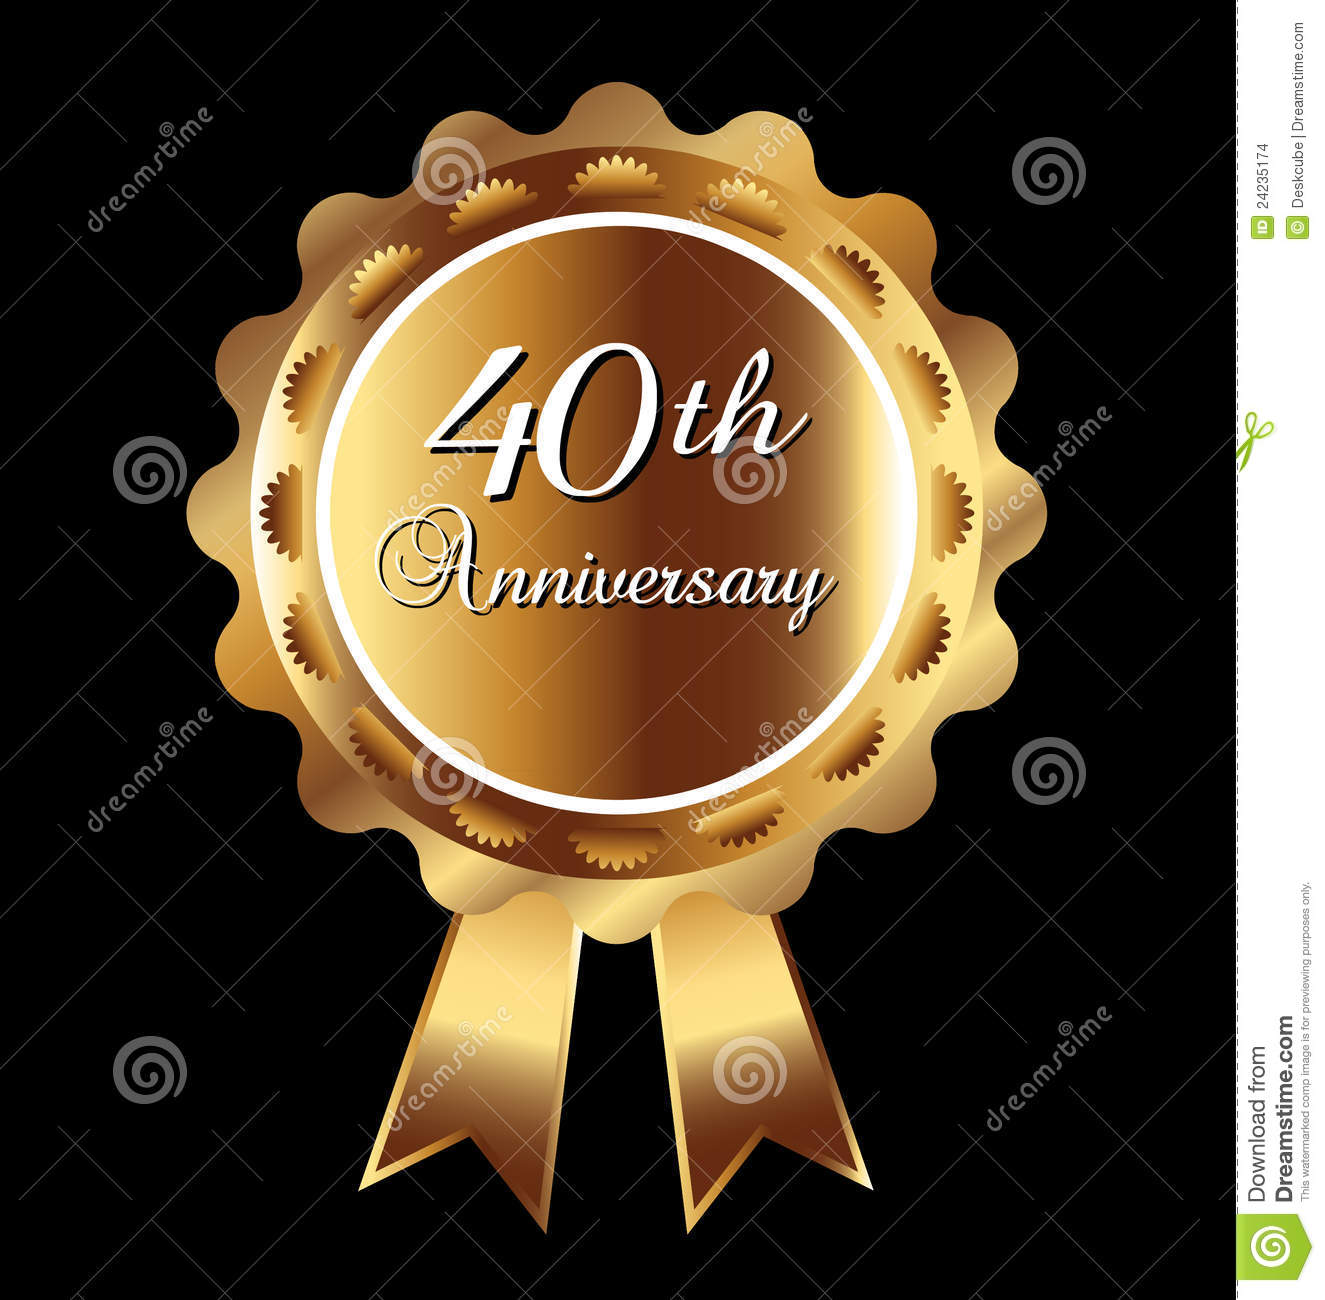 40th anniversary medal stock vector. Illustration of ...